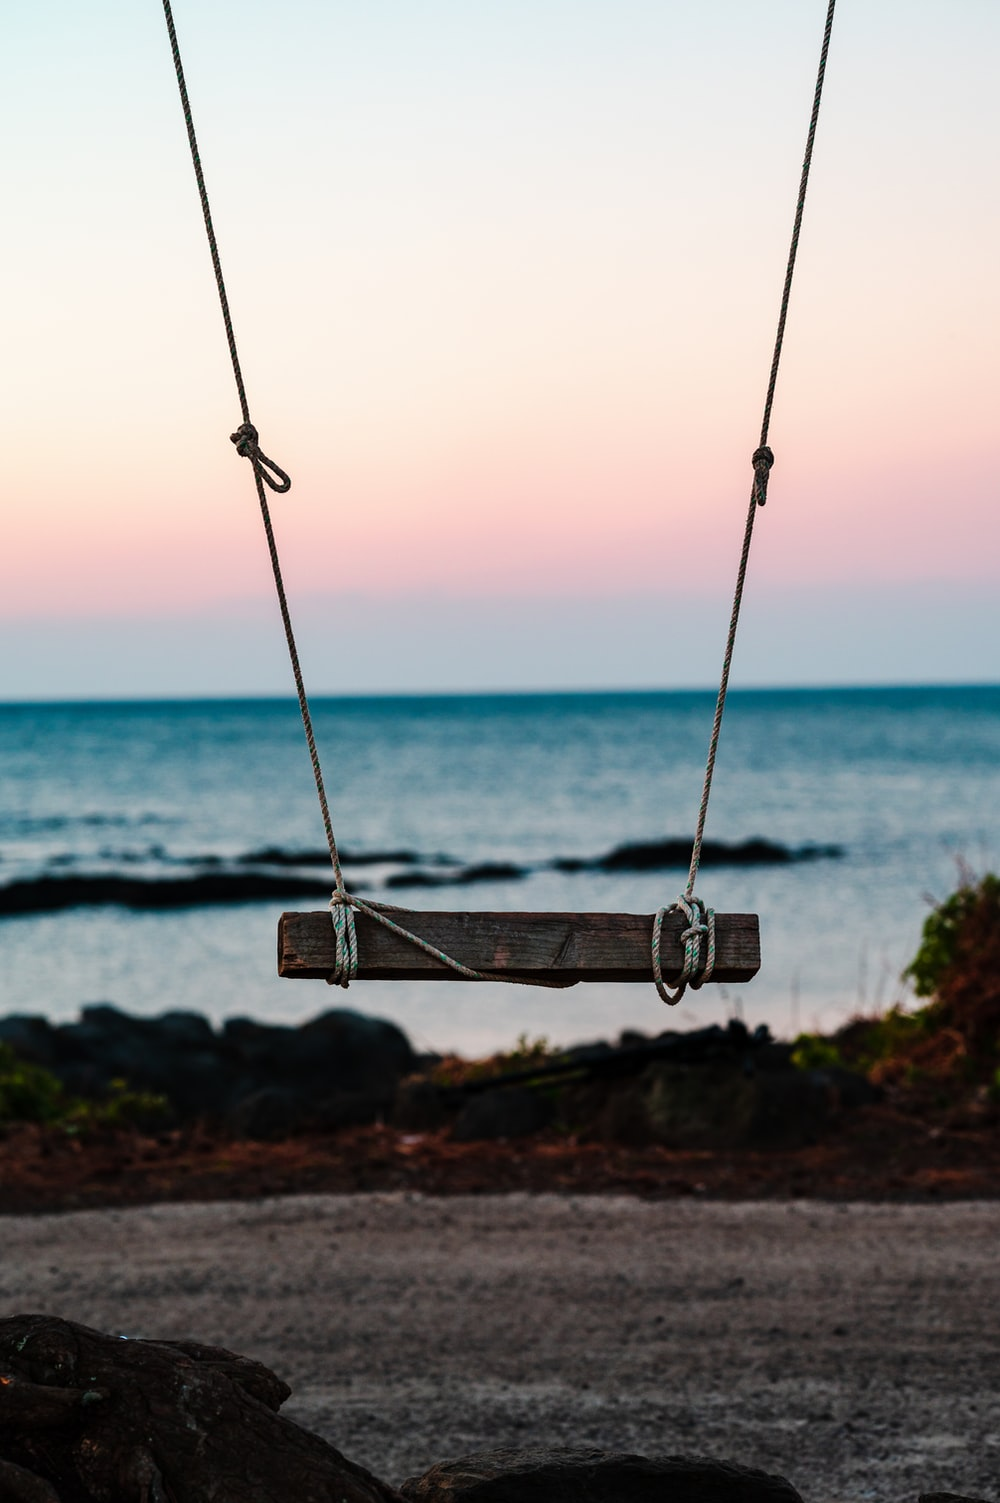 brown wooden swing near sea during daytime